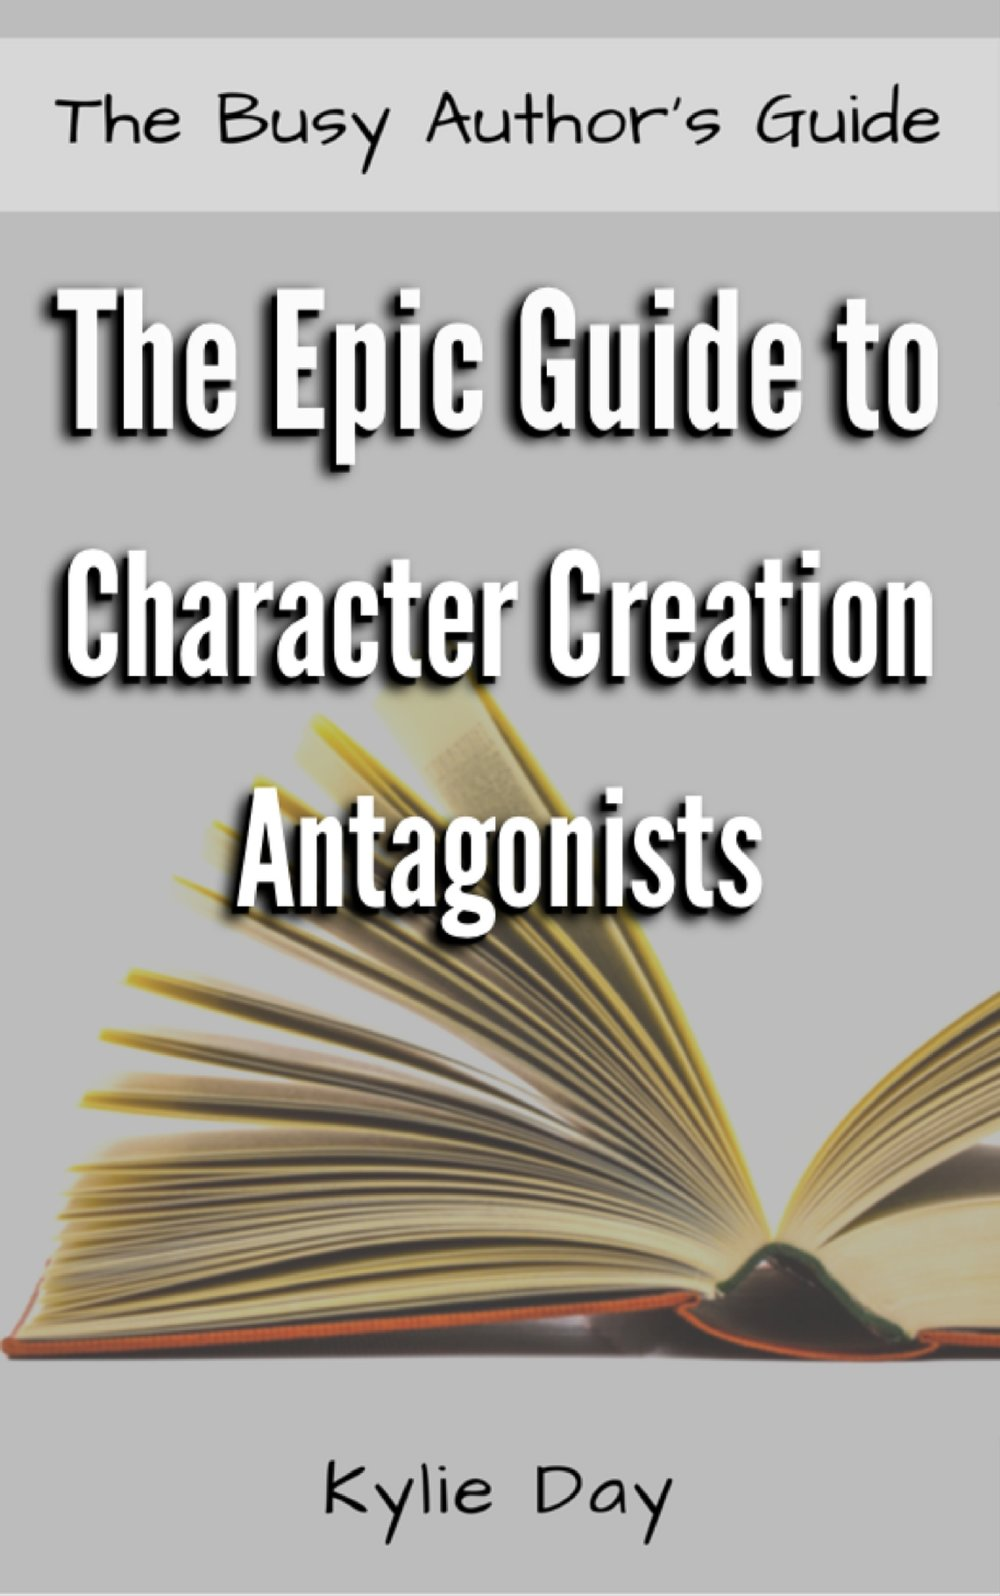 THE EPIC GUIDE TO CHARACTER CREATION: ANTAGONISTS